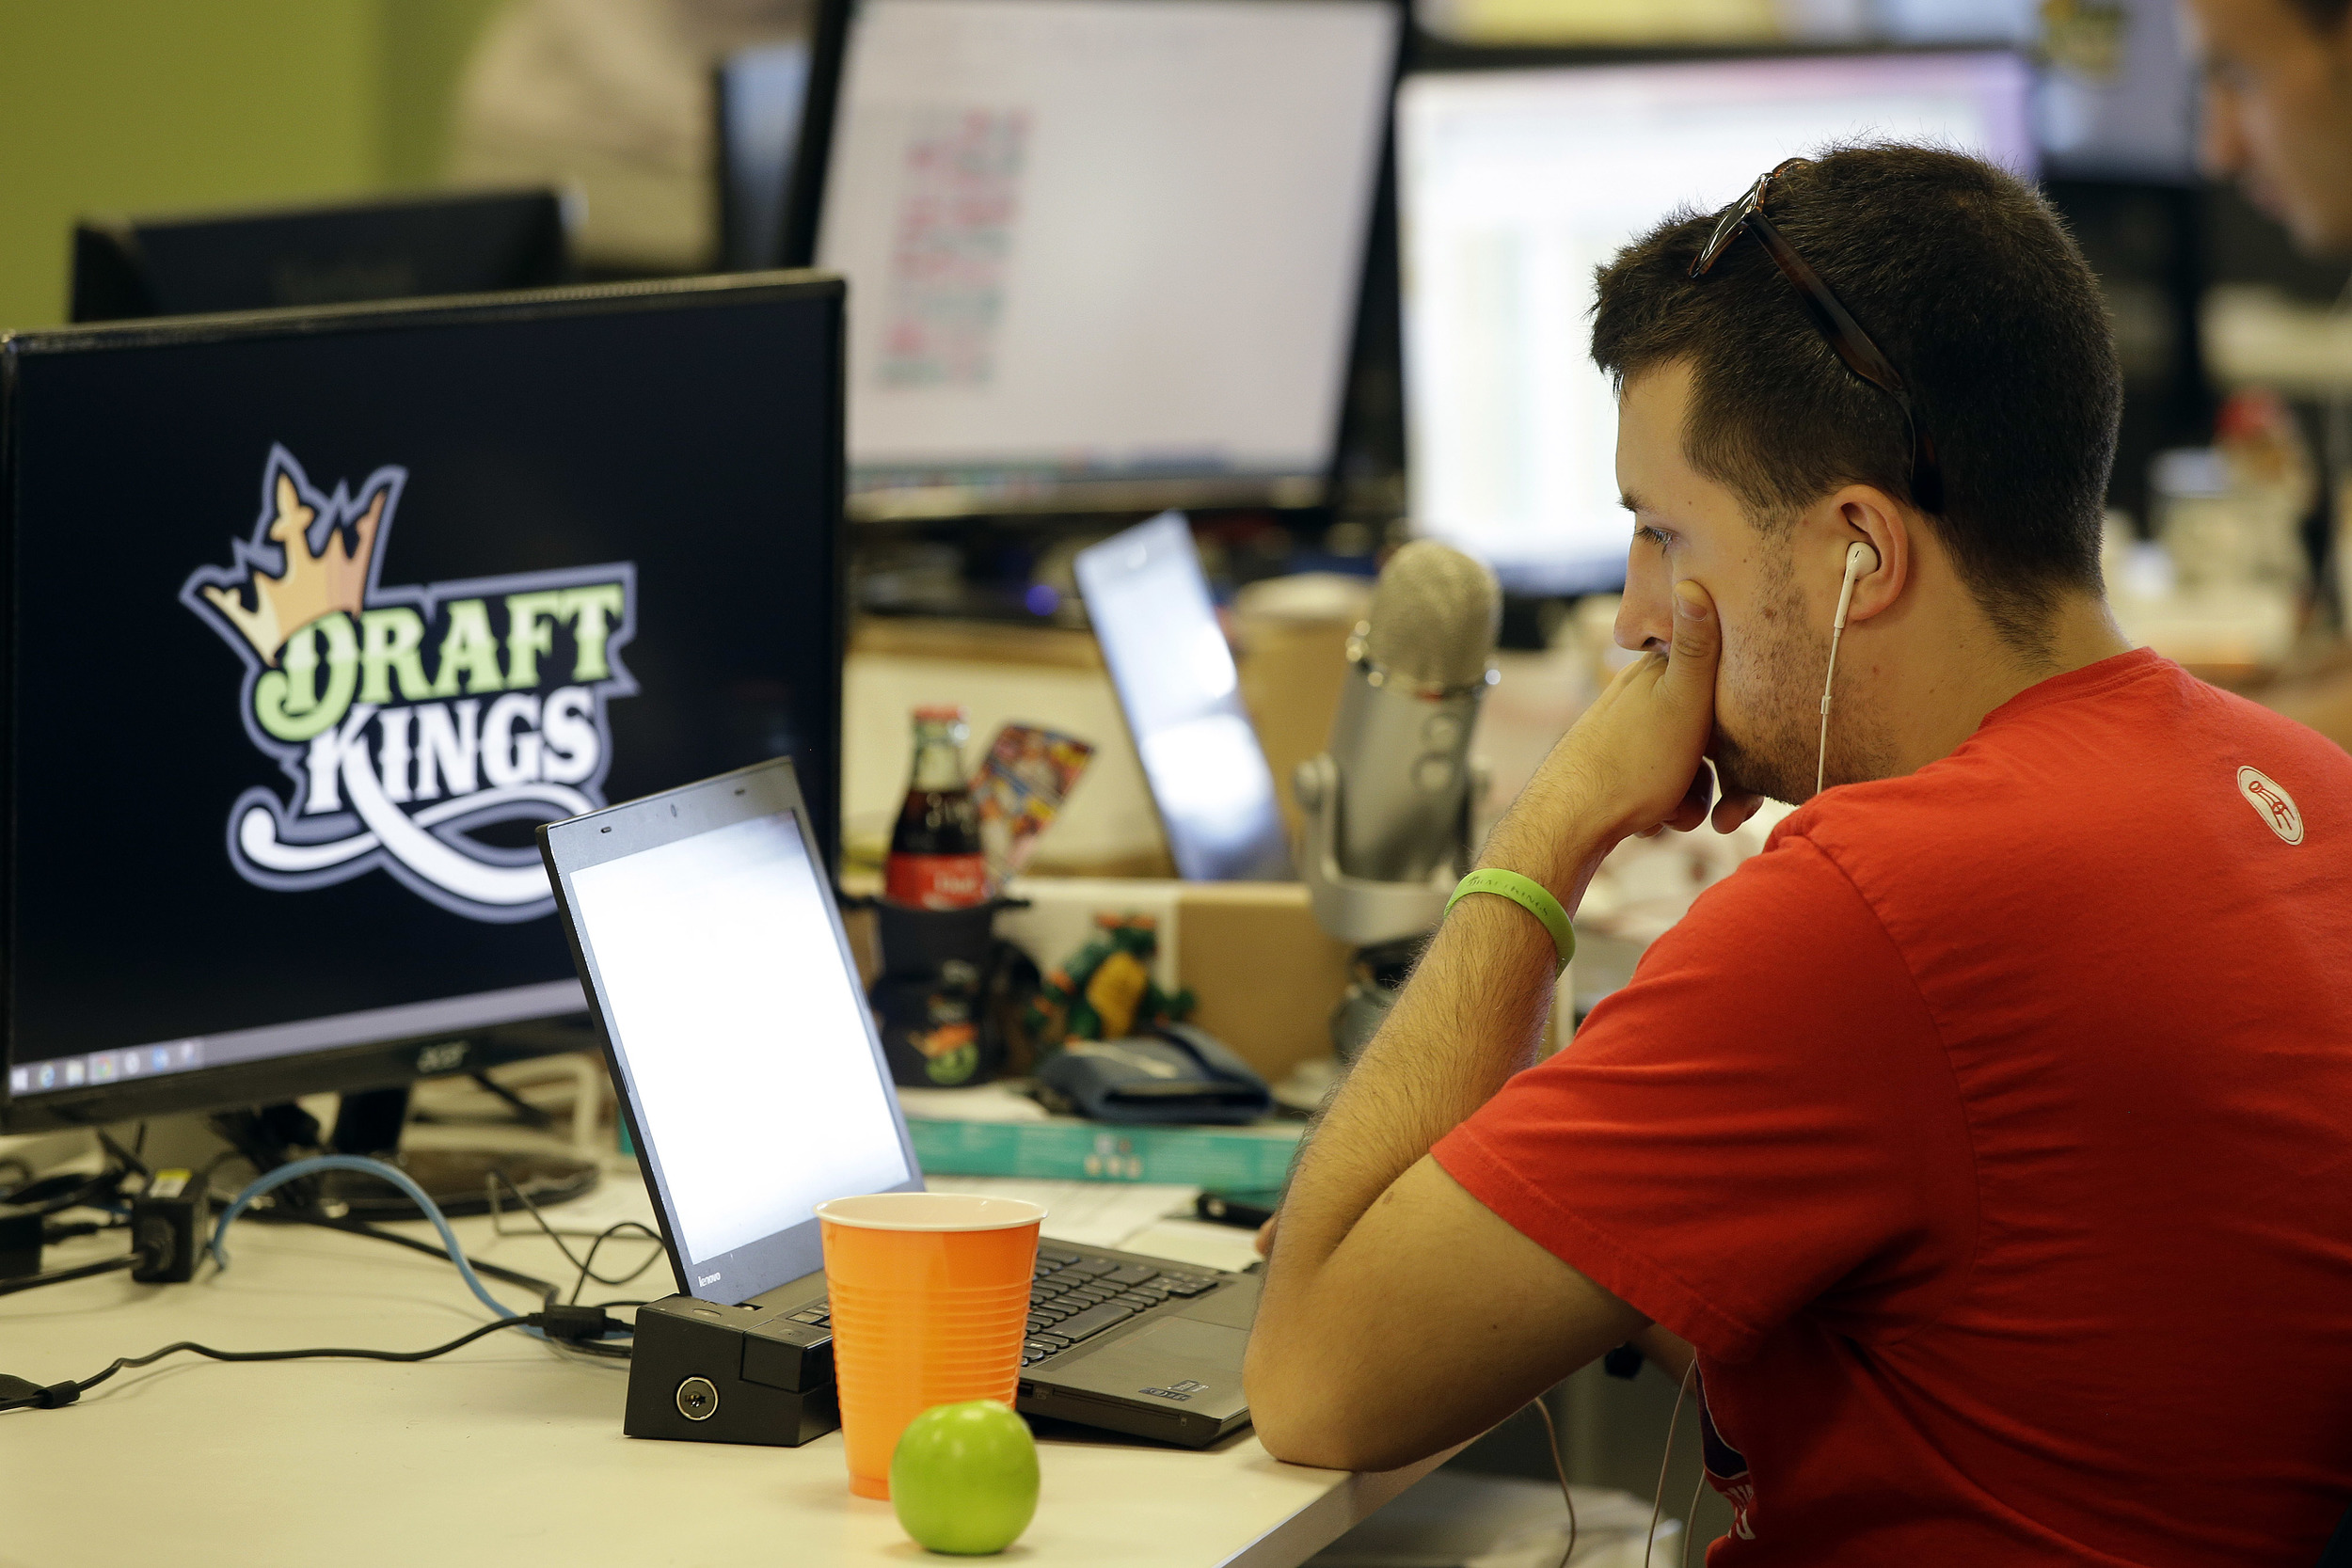 In this Sept. 9, 2015 file photo, Devlin D'Zmura, a tending news manager at DraftKings, a daily fantasy sports company, works on his laptop at the company's offices in Boston. Customers of the two biggest daily fantasy sports websites have filed at least four lawsuits against the sites in Oct. 2015, following cheating allegations and a probe into the largely-unregulated multi-billion dollar industry. (Stephan Savoia/AP)